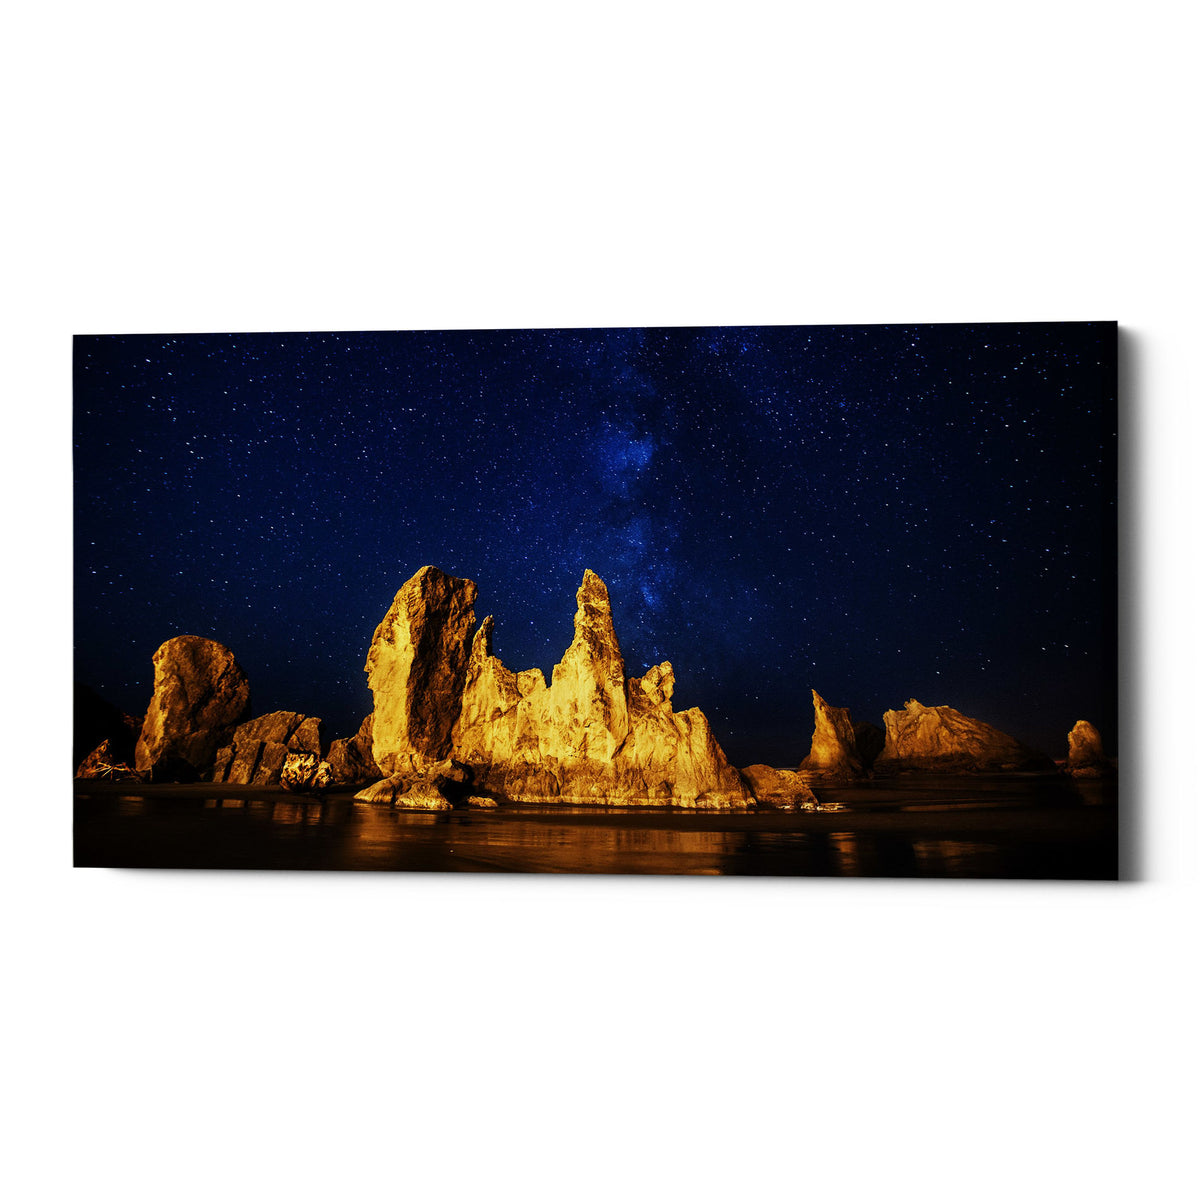 "Epic Graffiti ""Oregon Nights"" by Darren White, Giclee Canvas Wall Art"